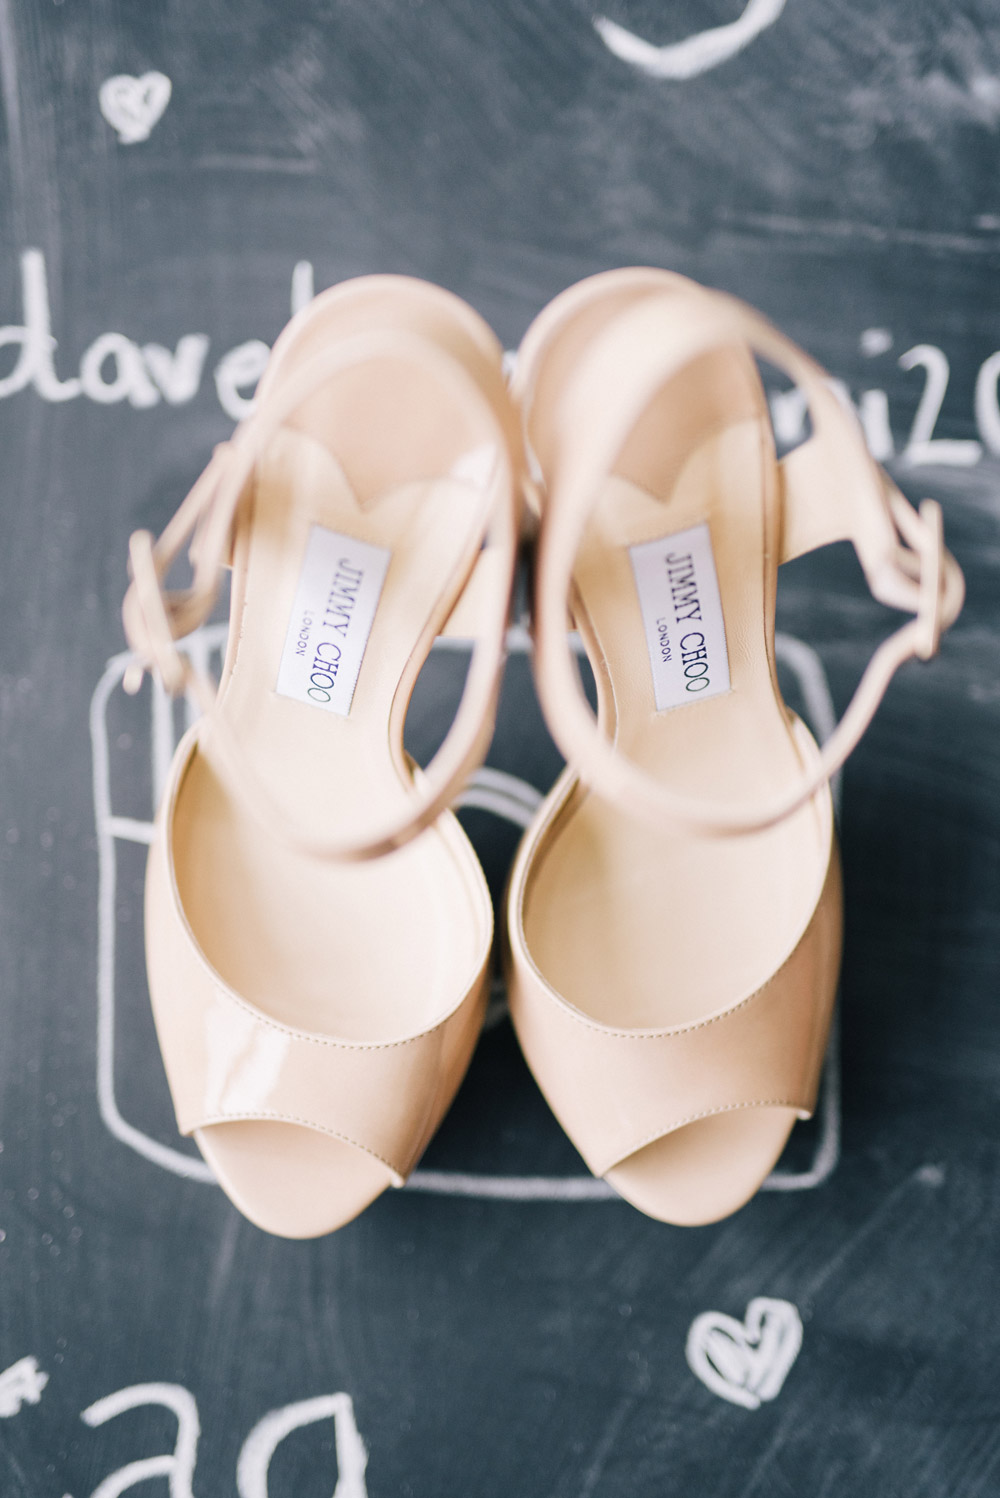 Bridal shoes. Ben Yew Photography. www.theweddingnotebook.com